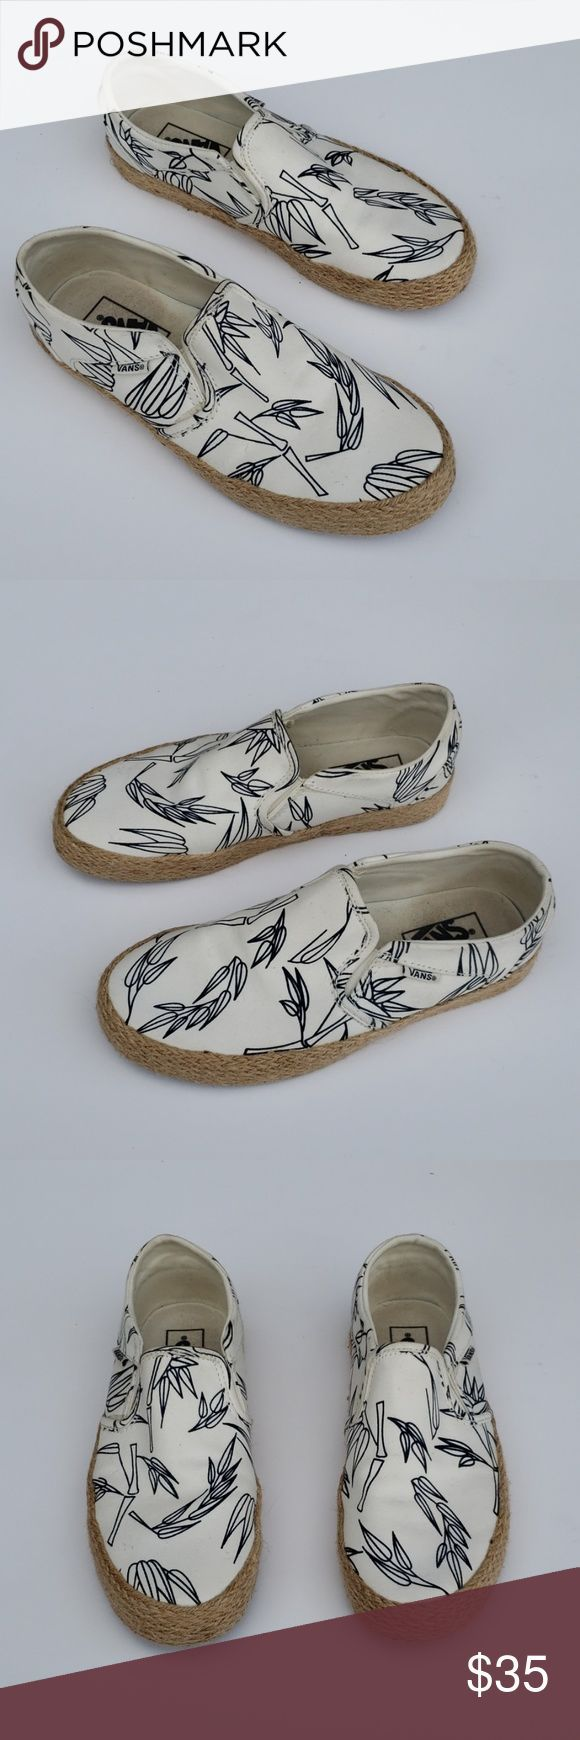 Vans bamboo slip on shoes Rare Excellent used condition Adorable white and navy  My Posh Picks